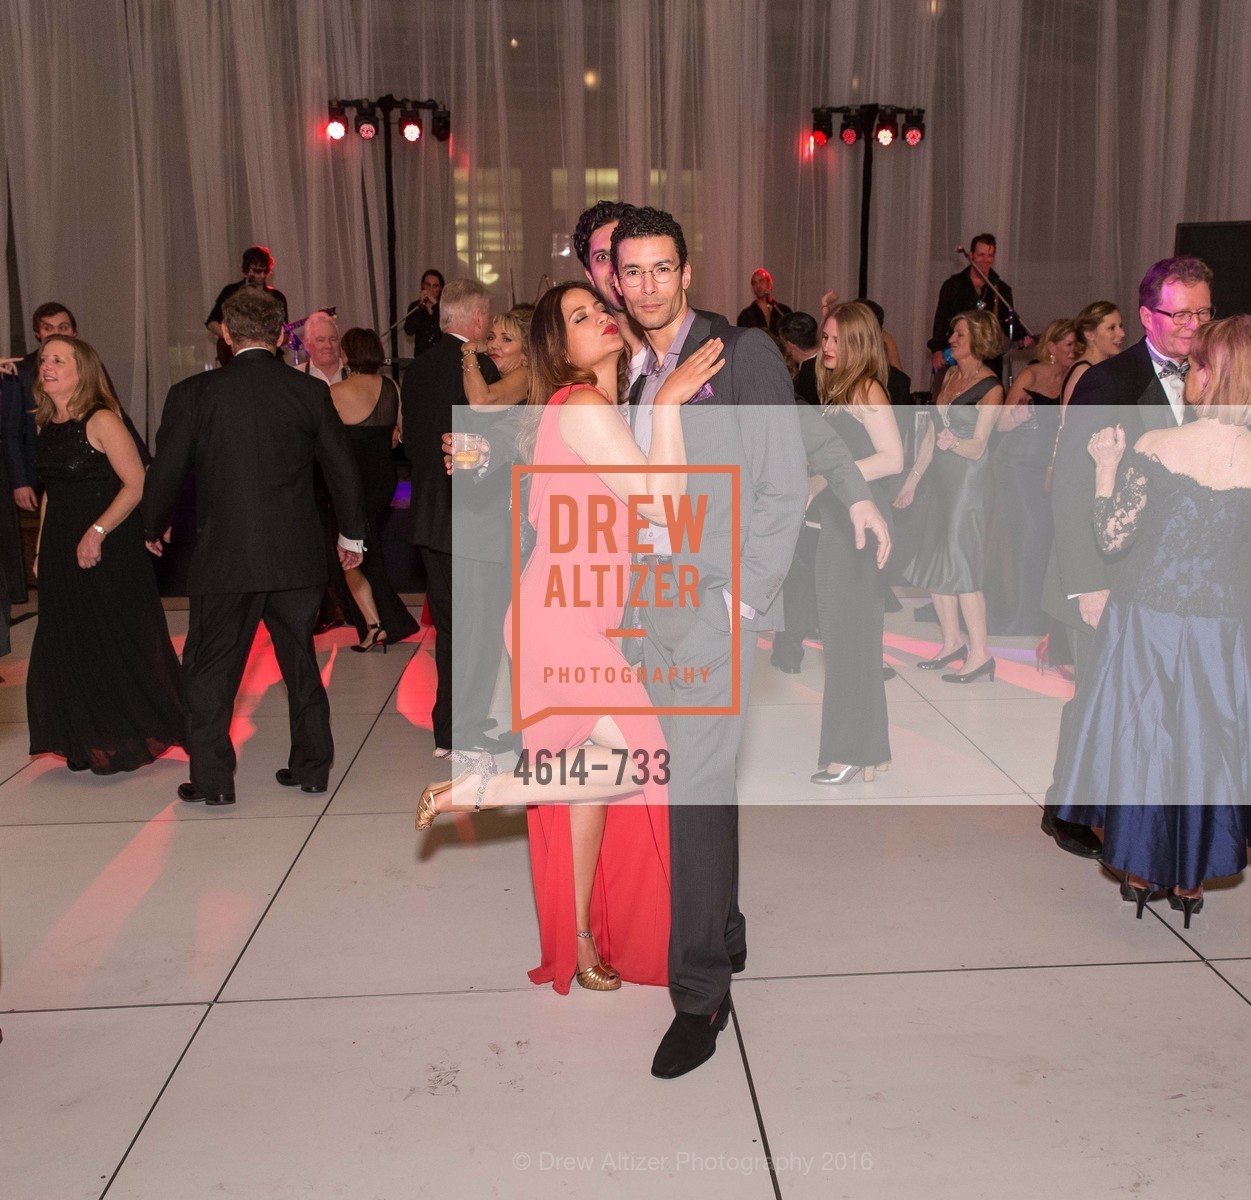 Extras, San Francisco Ballet 2016 Opening Night Gala, January 21st, 2016, Photo,Drew Altizer, Drew Altizer Photography, full-service event agency, private events, San Francisco photographer, photographer California